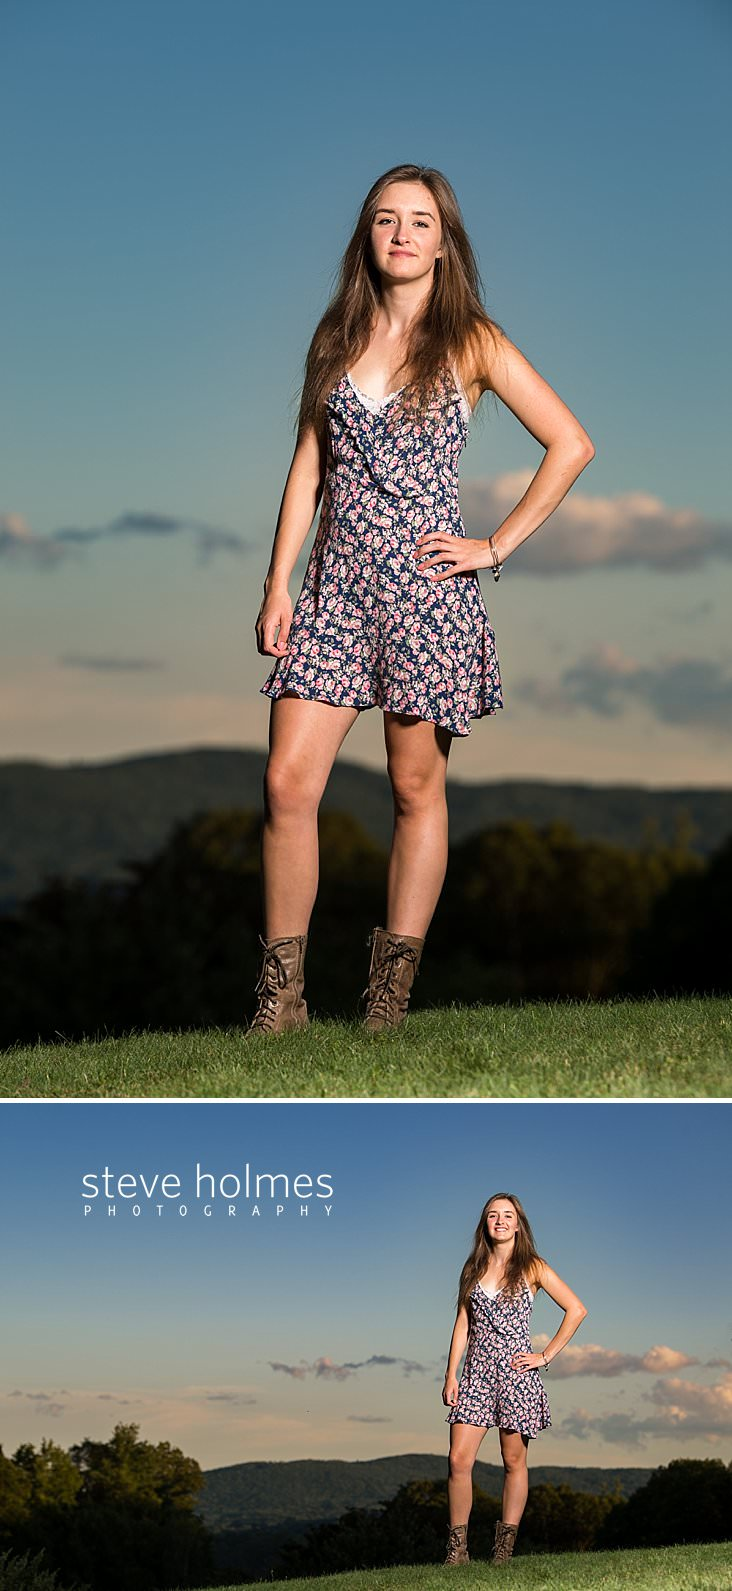 08_Brunette teen stands on hill top in floral dress and brown boots for senior photo.jpg